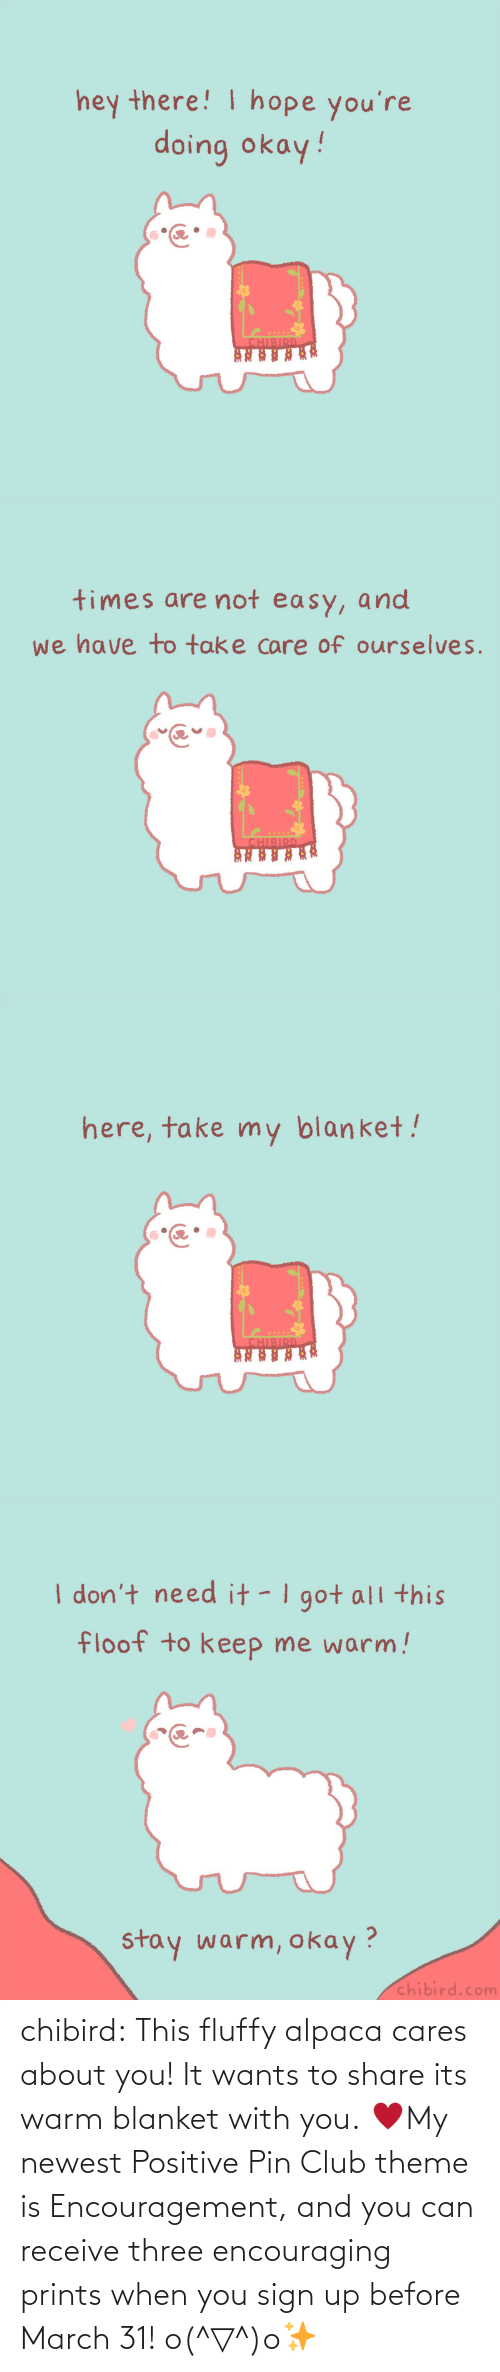 theme: chibird:  This fluffy alpaca cares about you! It wants to share its warm blanket with you. ♥My newest Positive Pin Club theme is Encouragement, and you can receive three encouraging prints when you sign up before March 31! o(^▽^)o✨